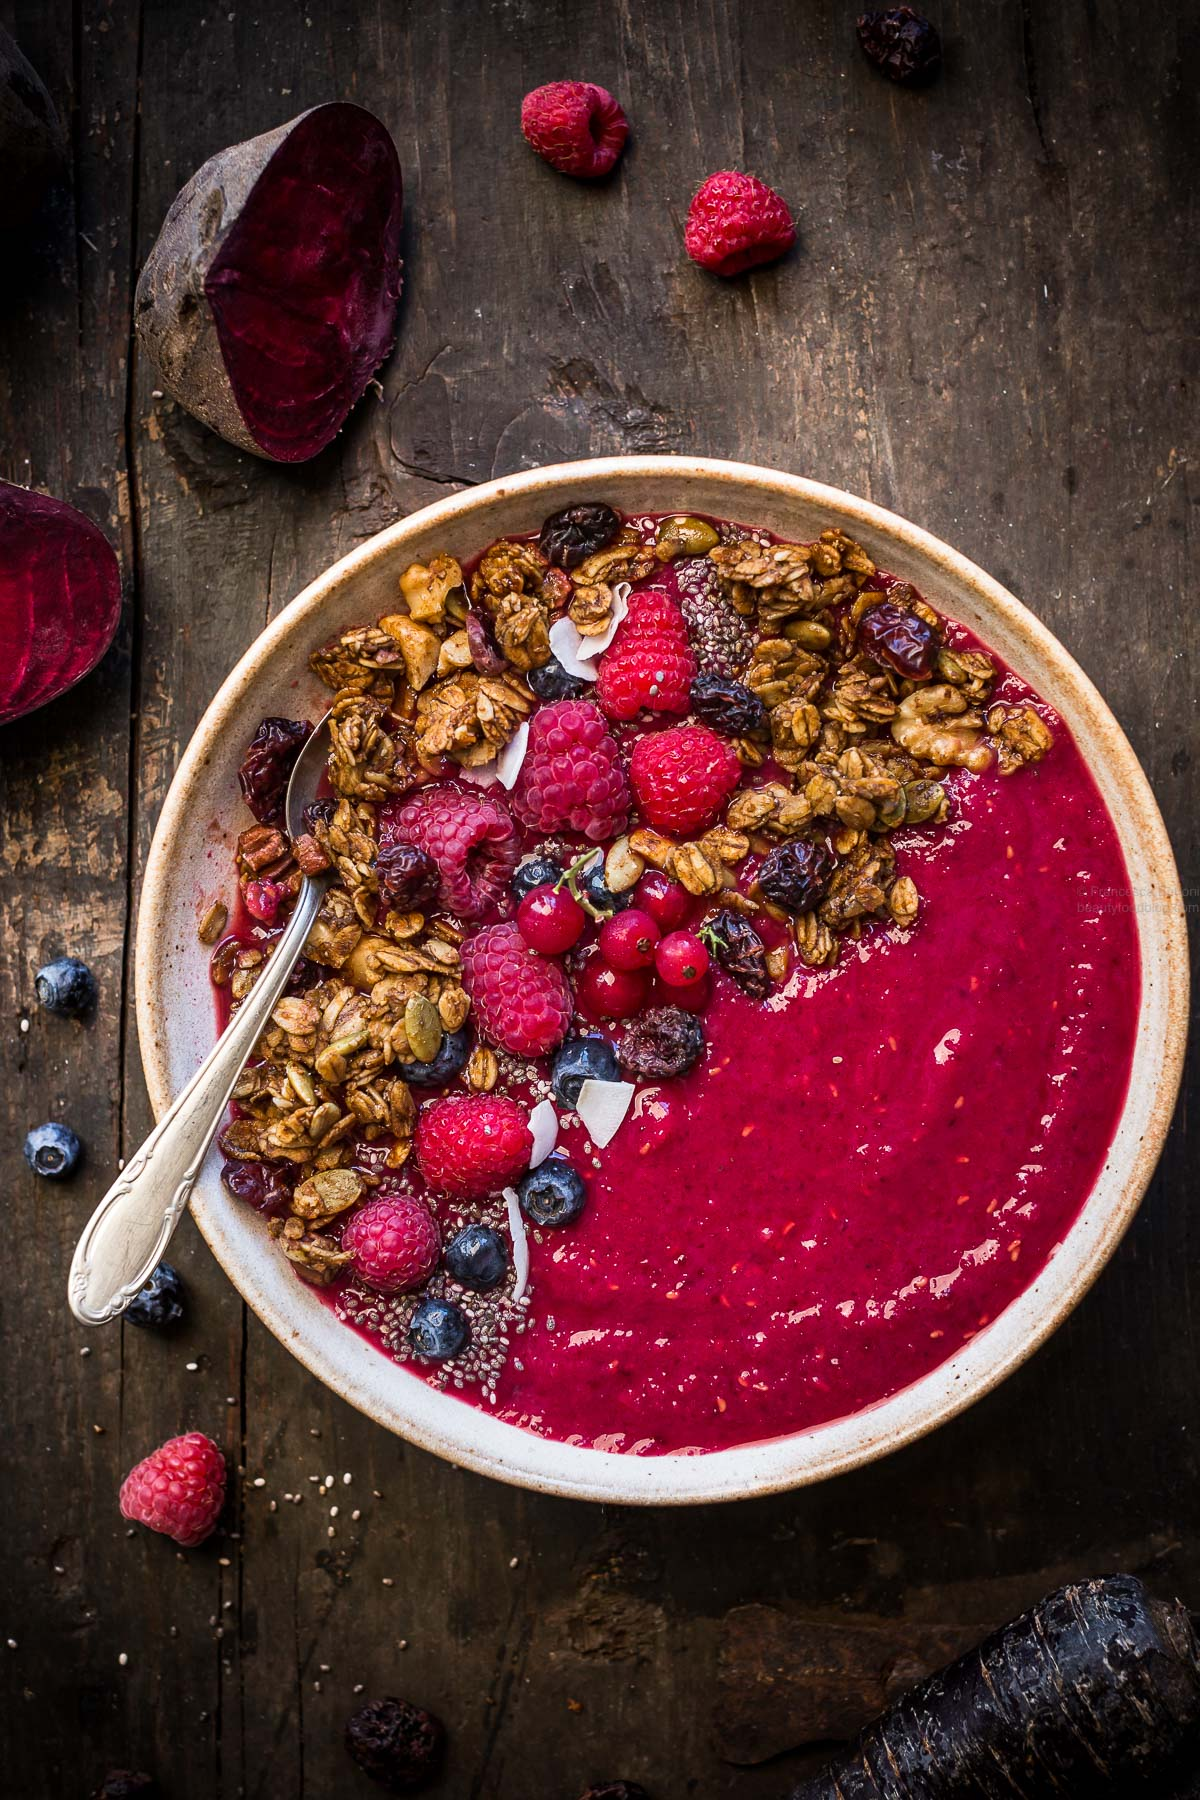 vegan beet smoothie bowl with pumpkin granola - detox smoothie bowl alla barbabietola #beet #smoothiebowl #glutenfree #vegan #granola